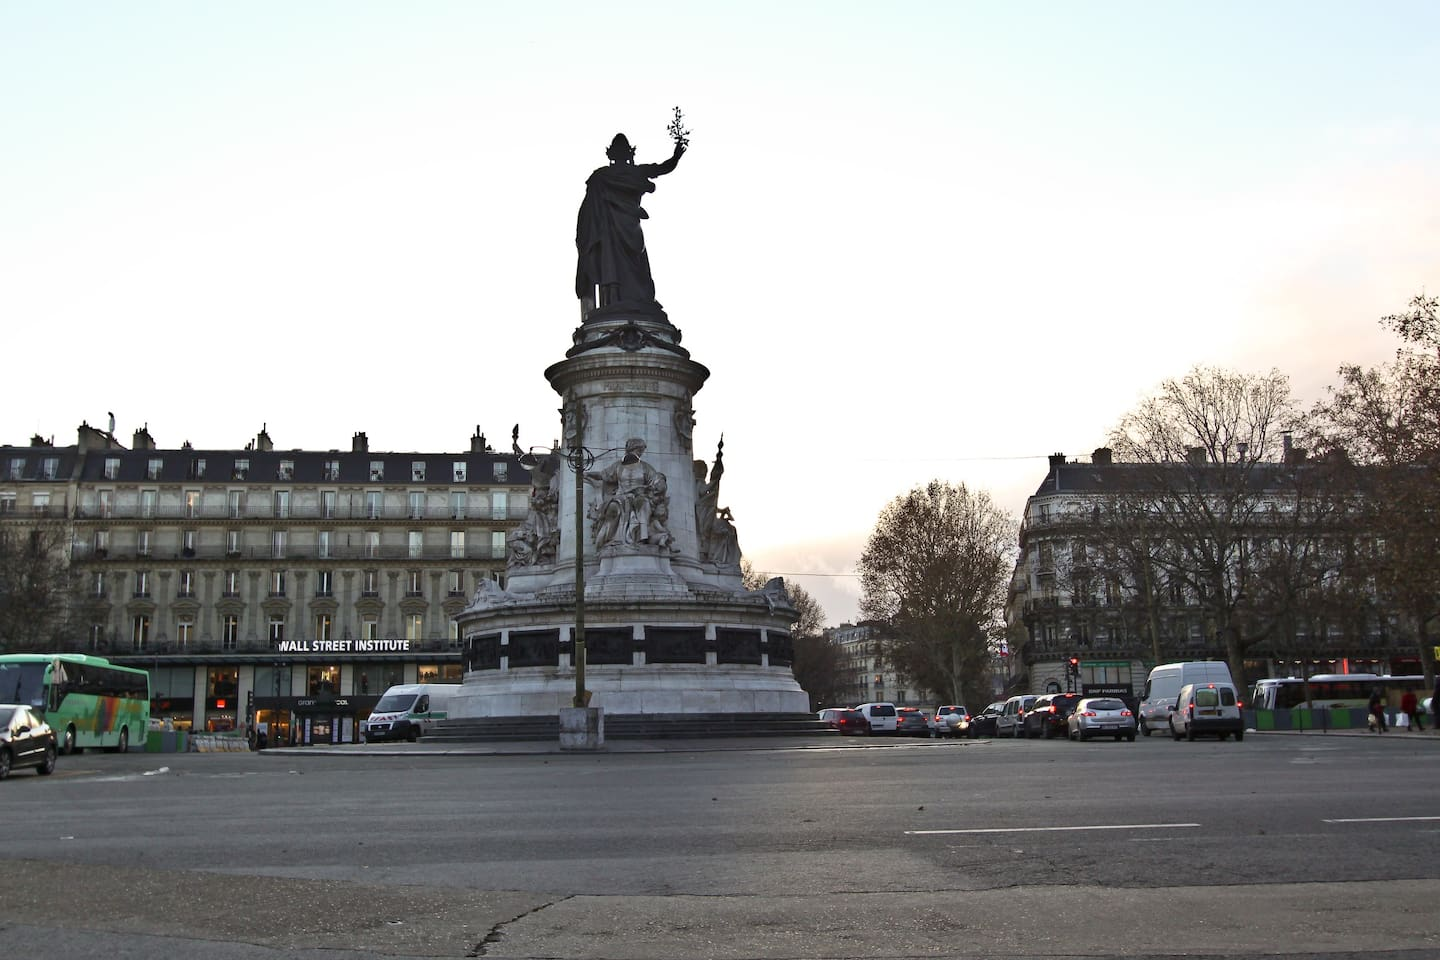 Good location in the heart of Paris